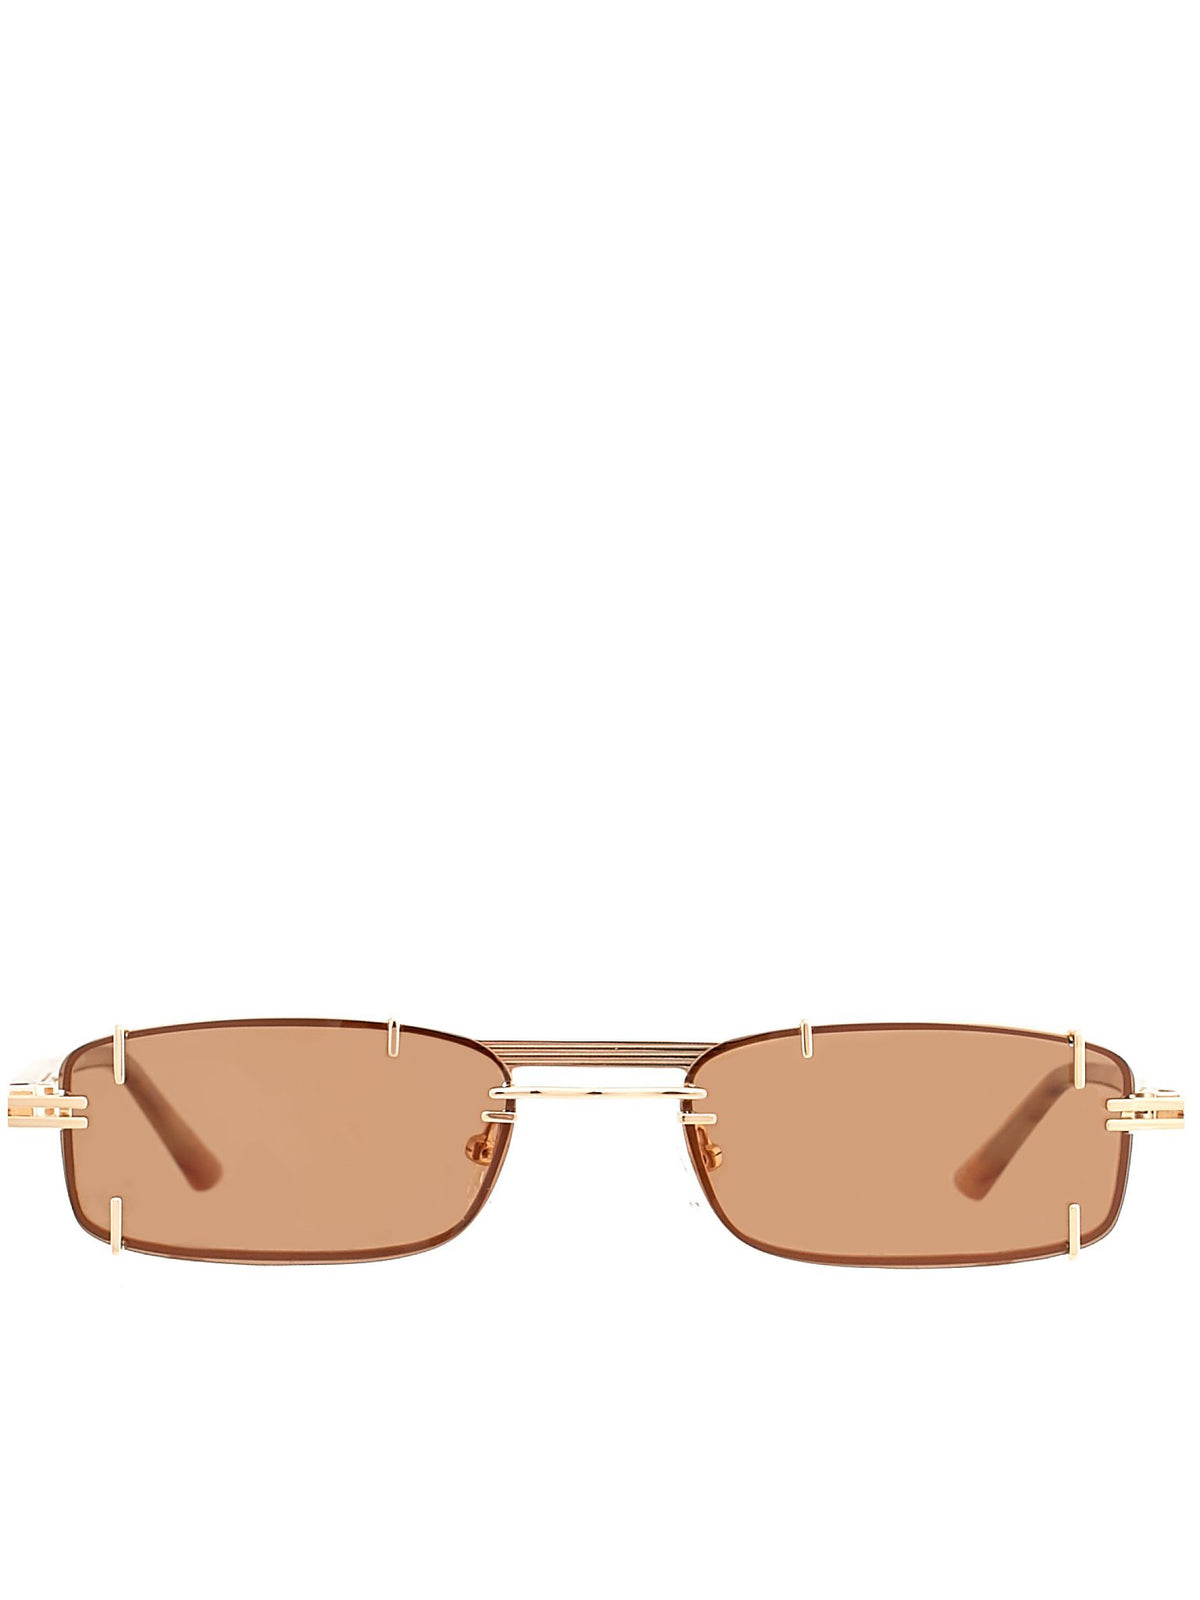 Y/Project Linda Farrow Sunglasses - Hlorenzo Front